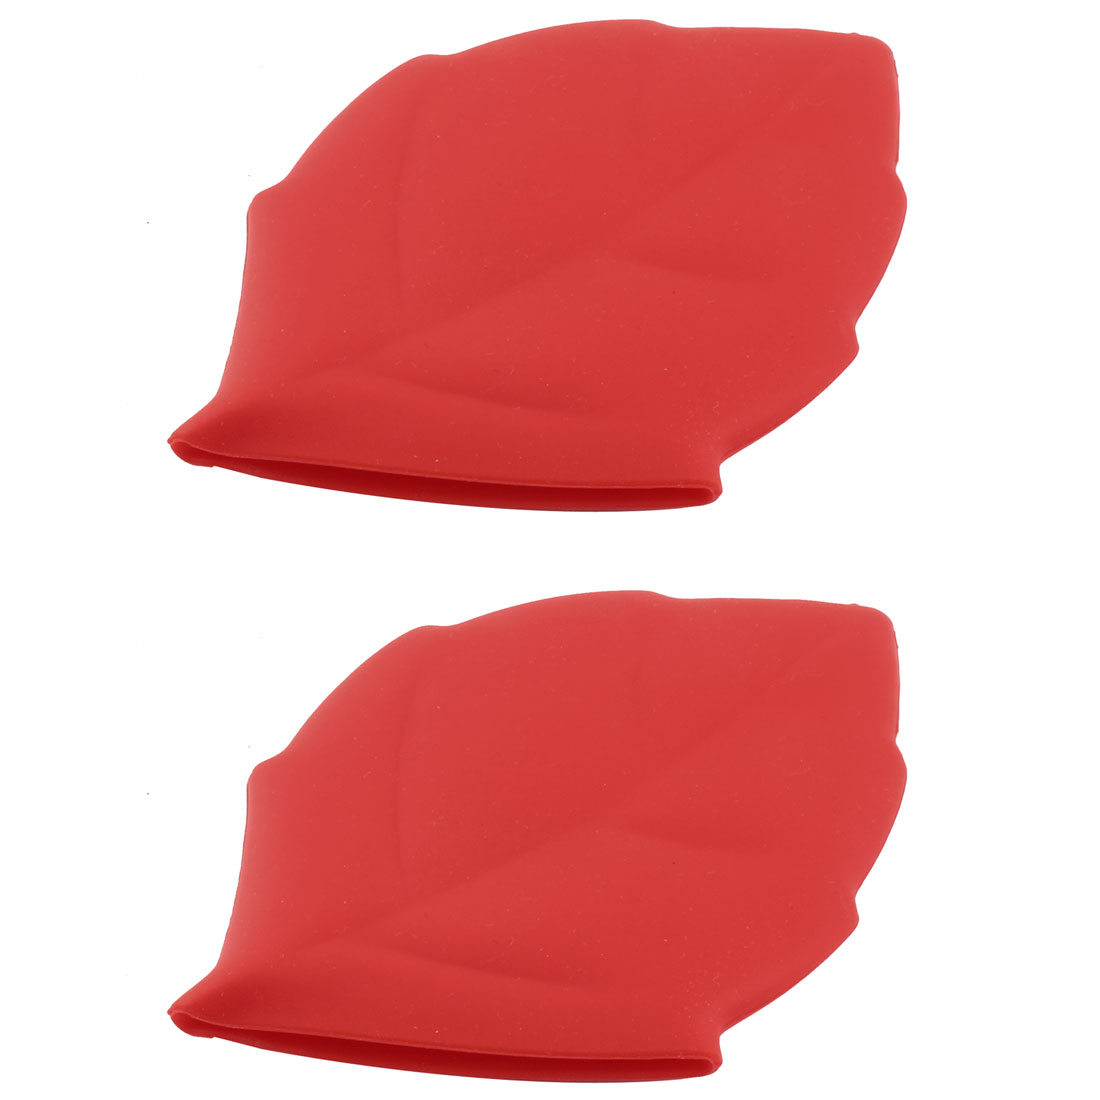 Travel Maple Leaf Shape Portable Folding Water Cup Silicone Cup Red 2 PCS